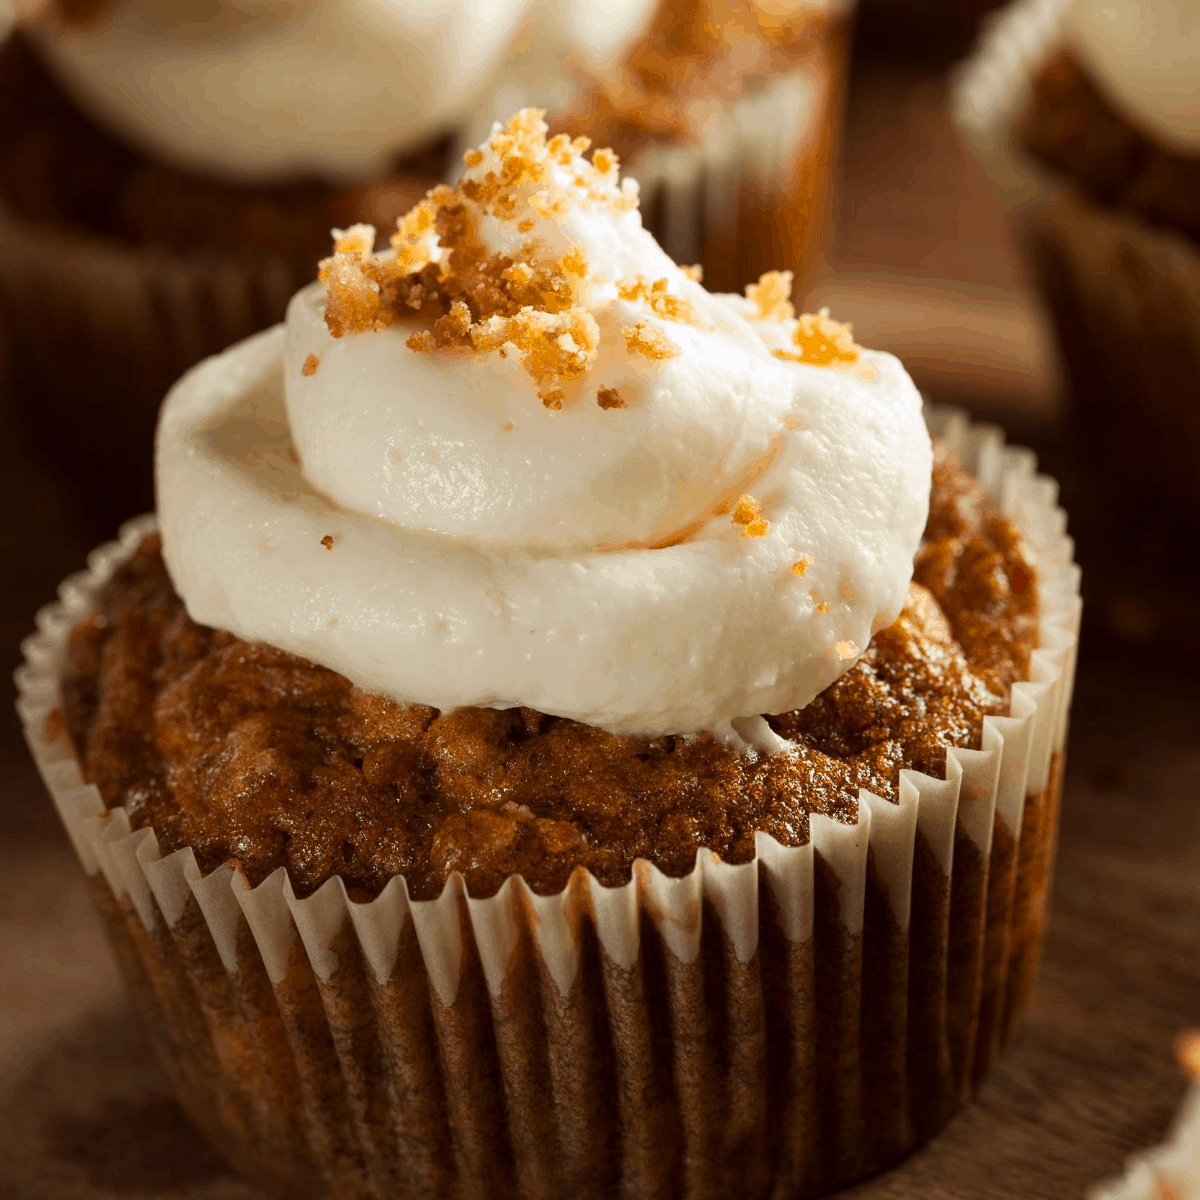 Cream Cheese Frosting FI